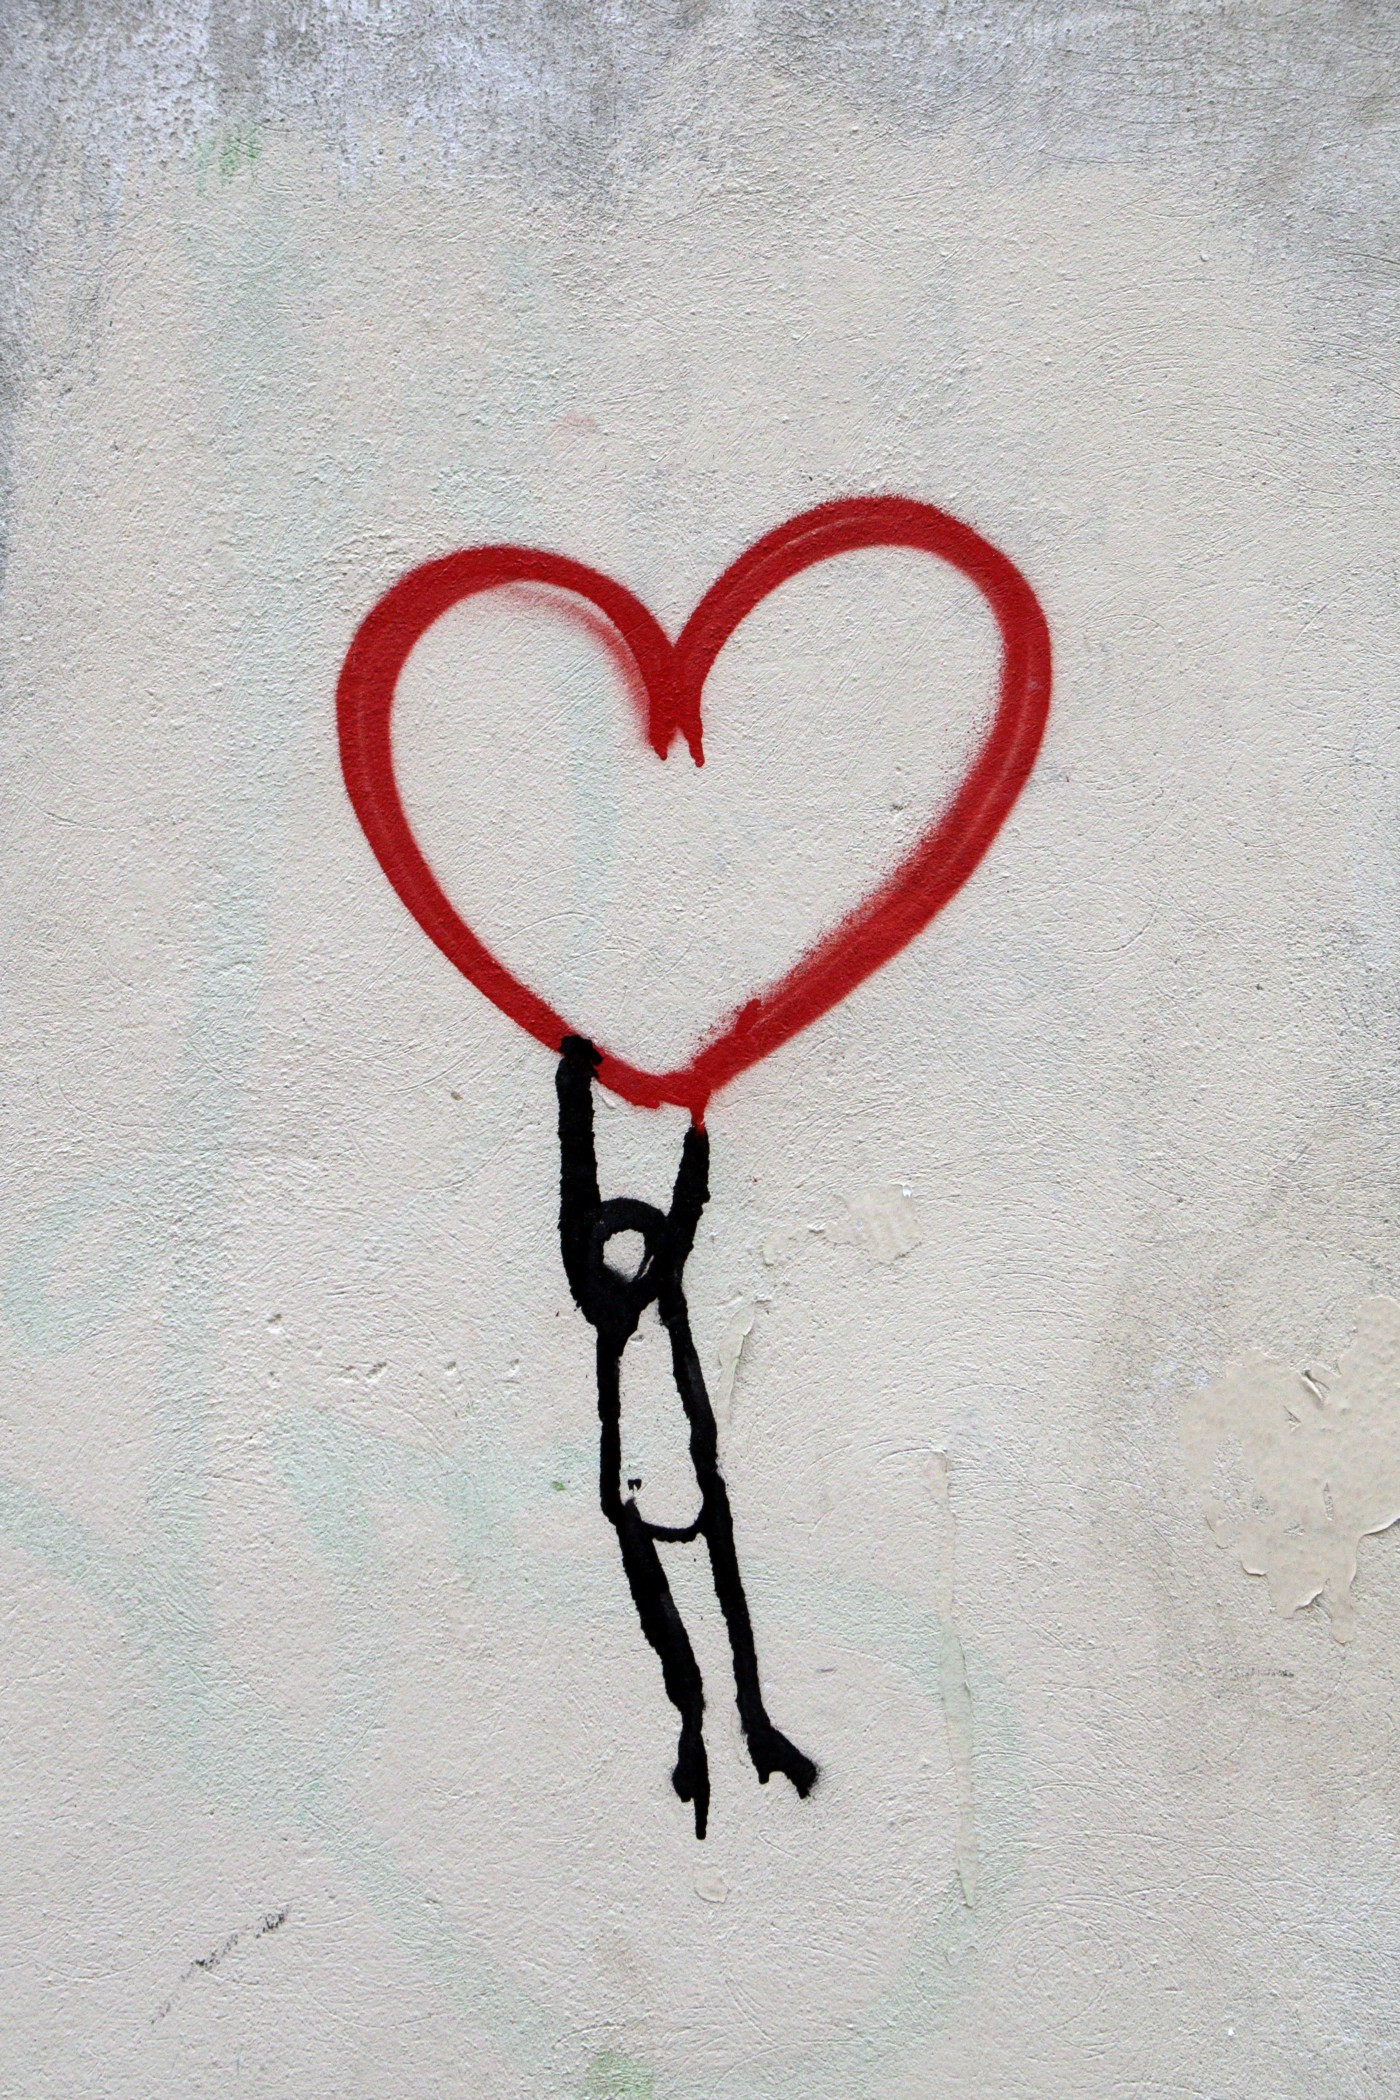 A stick figure human hangs from the bottom of a heart